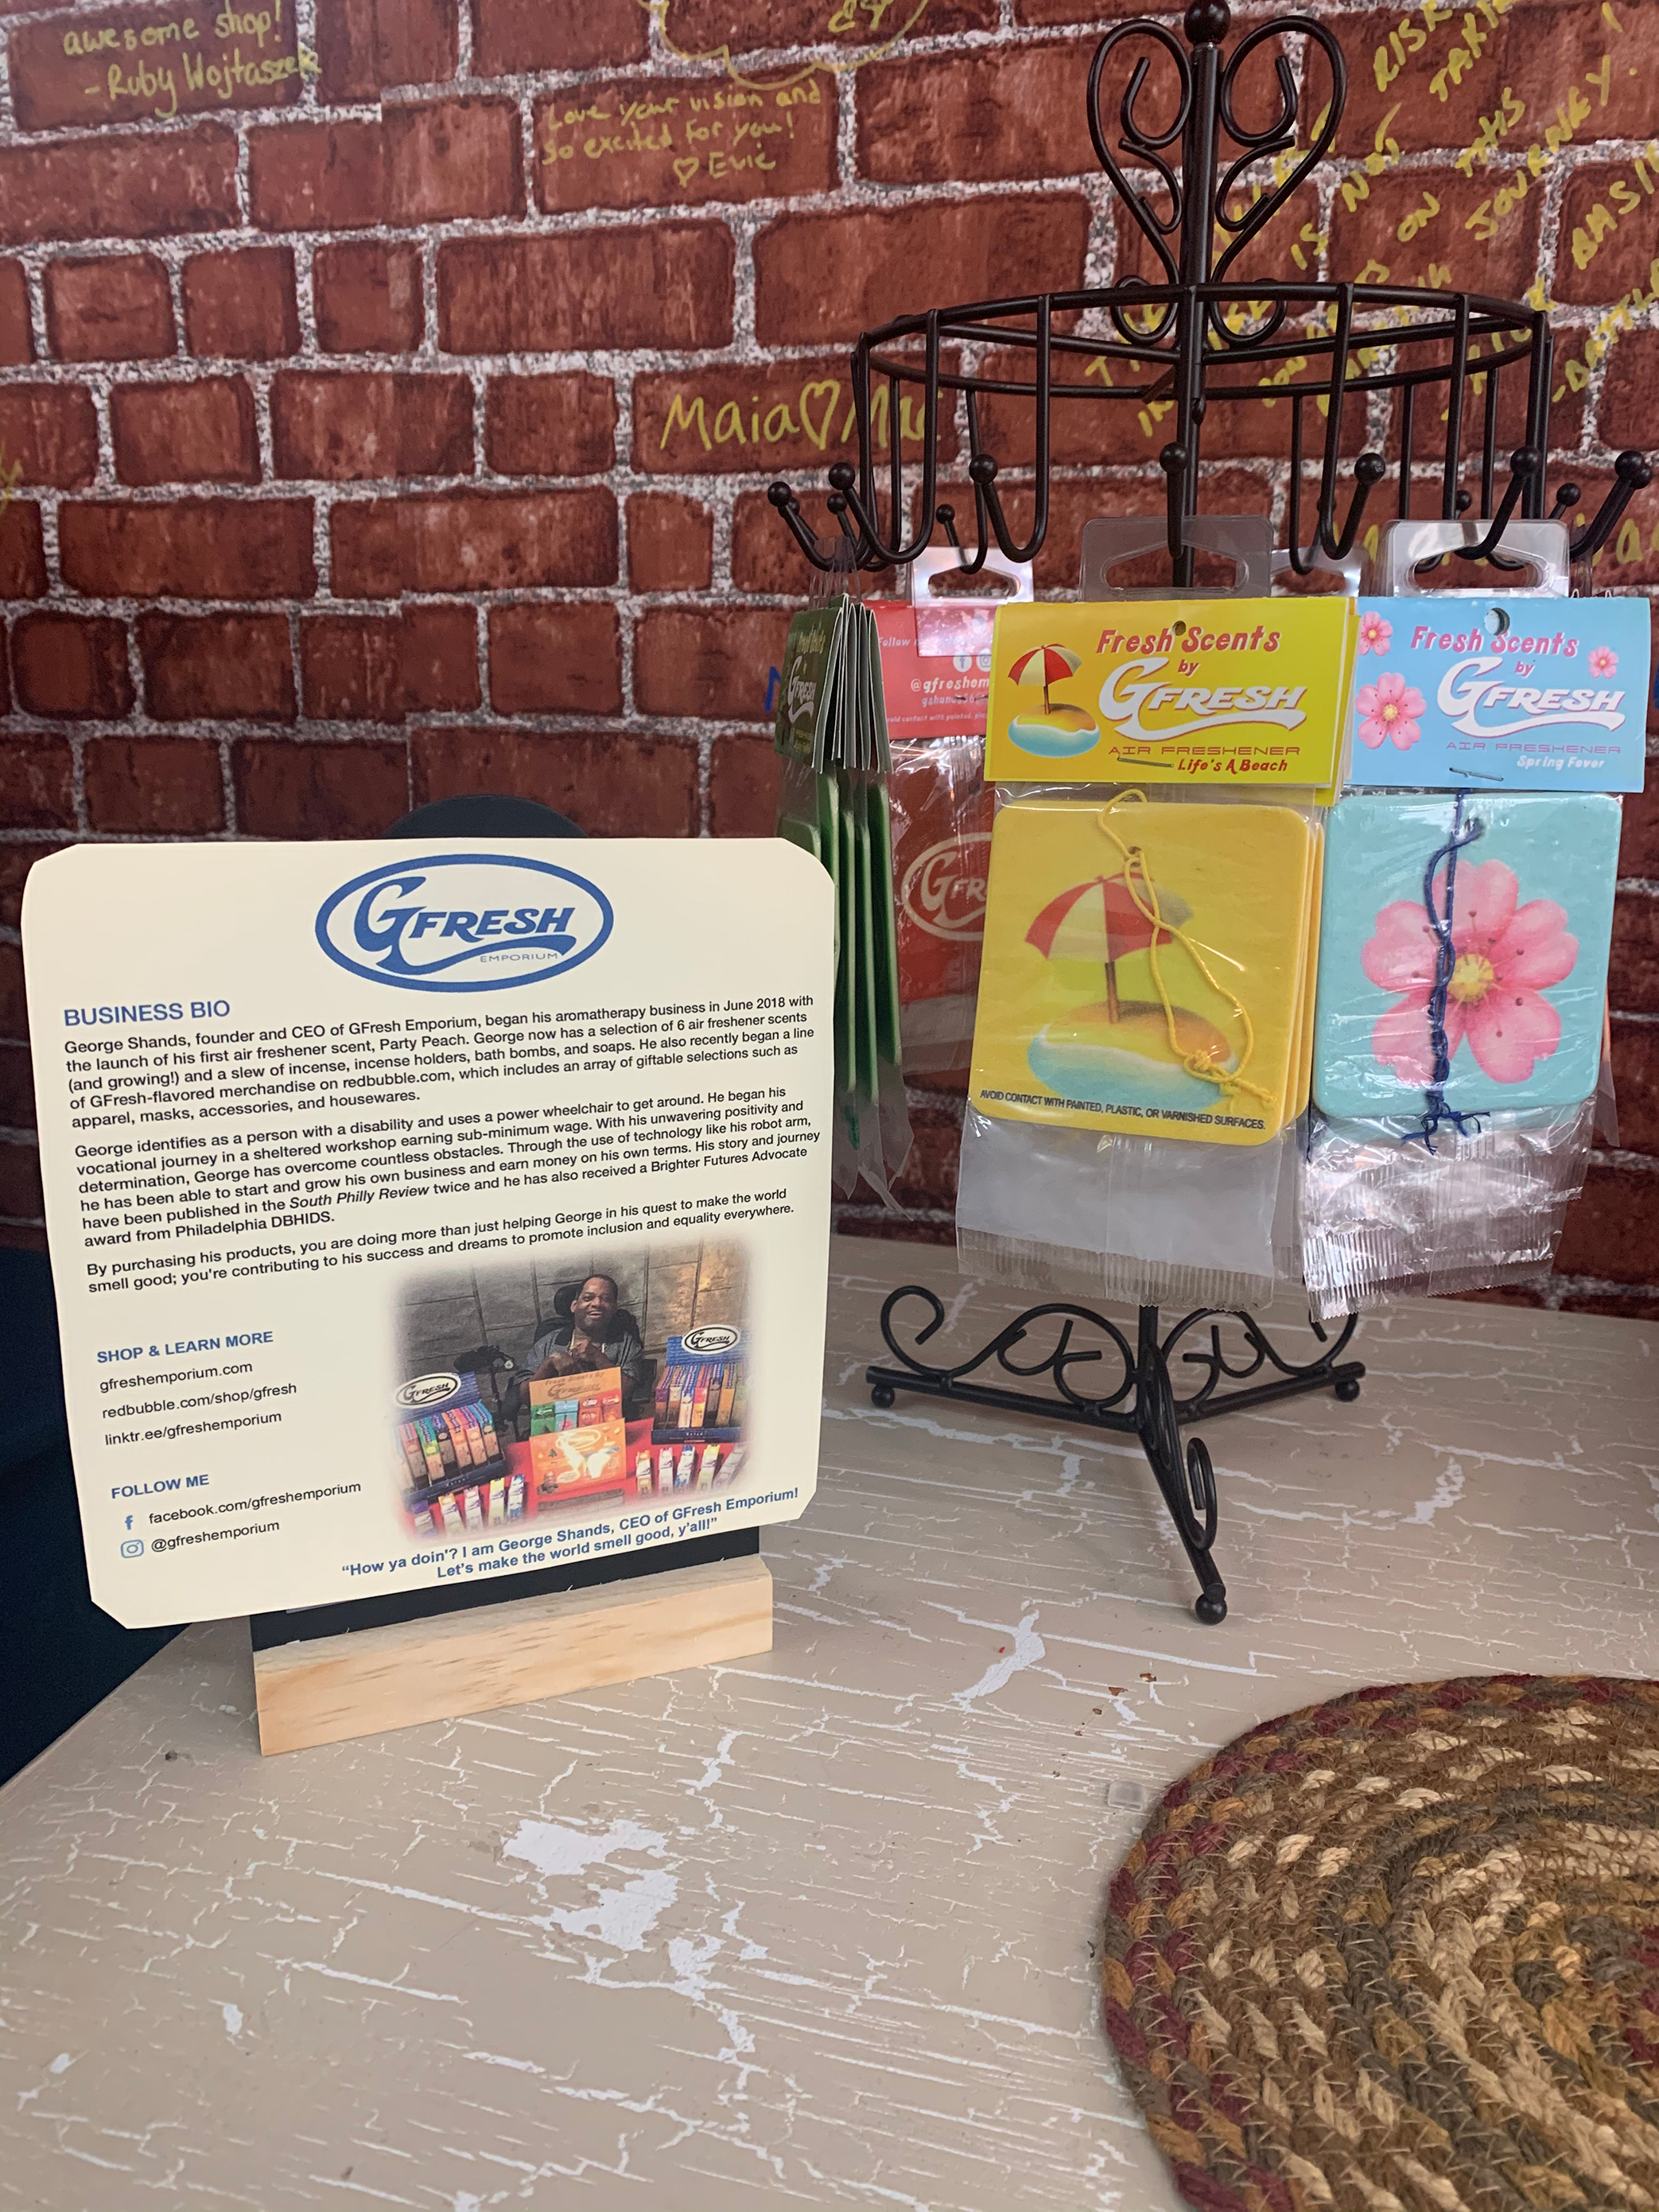 Image of Air fresheners at uncommon exchange